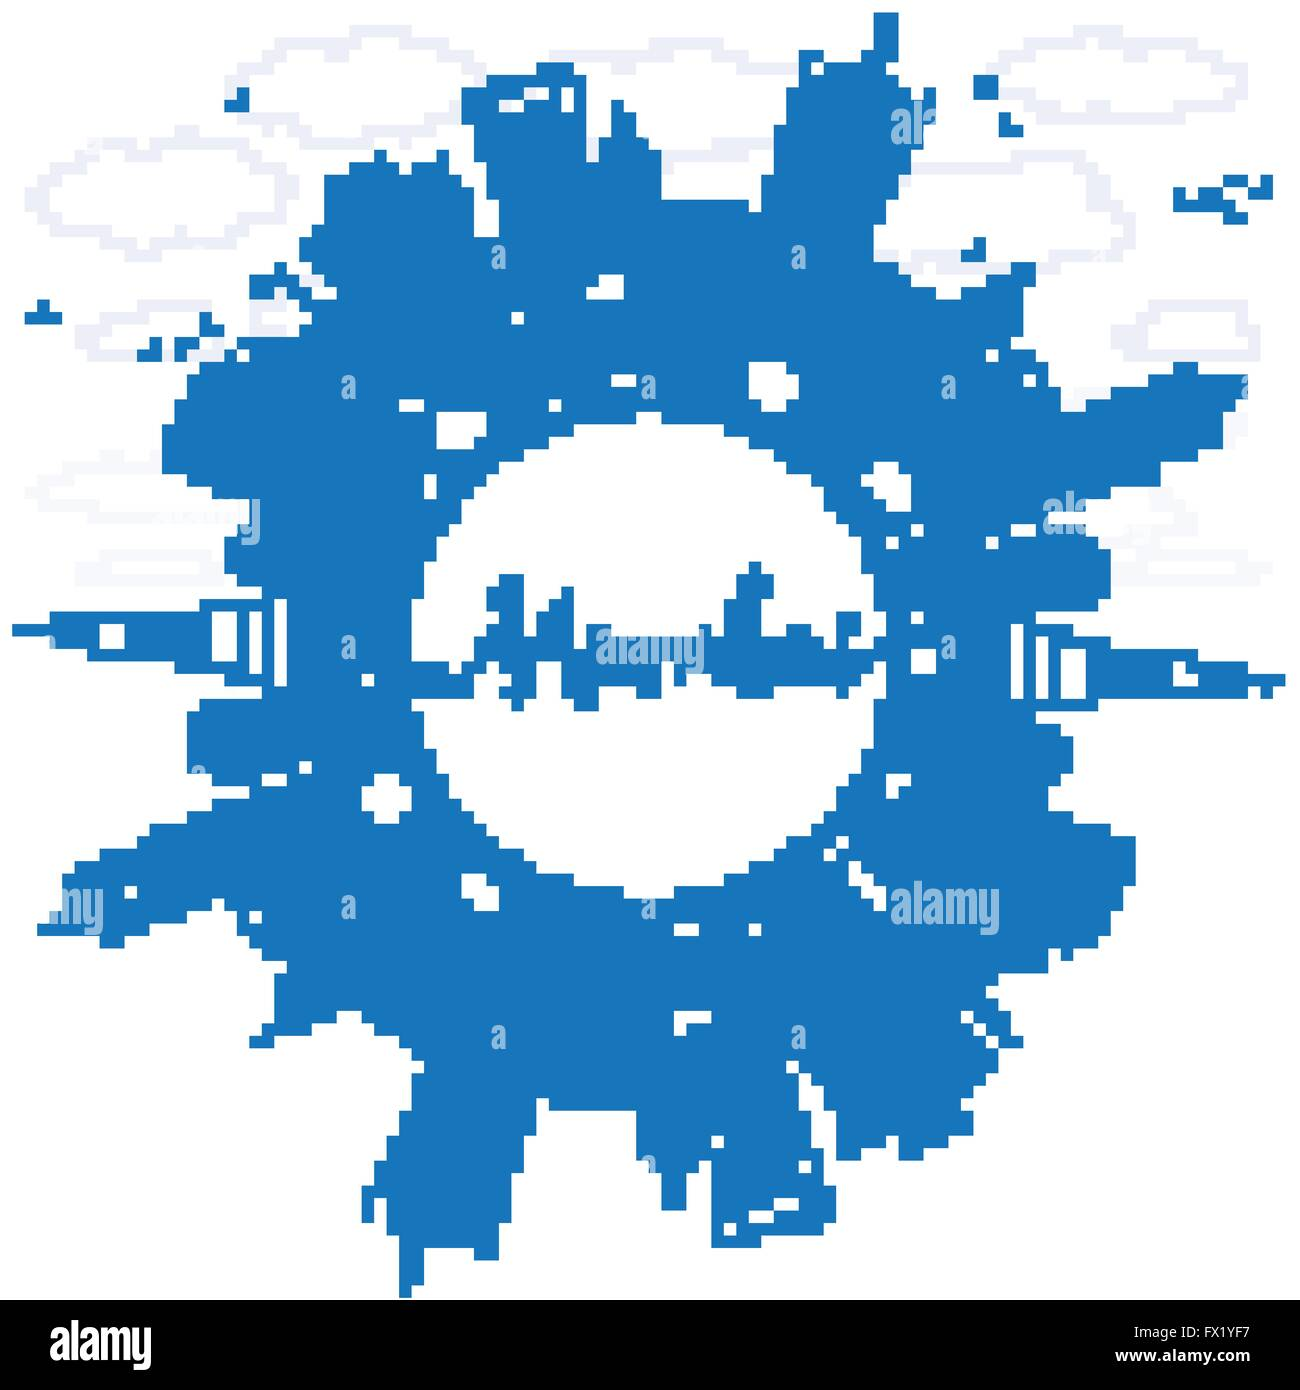 Outline athens skyline with blue buildings and copy space stock vector - Outline Mumbai Skyline With Blue Landmarks Vector Illustration Business Travel And Tourism Concept With